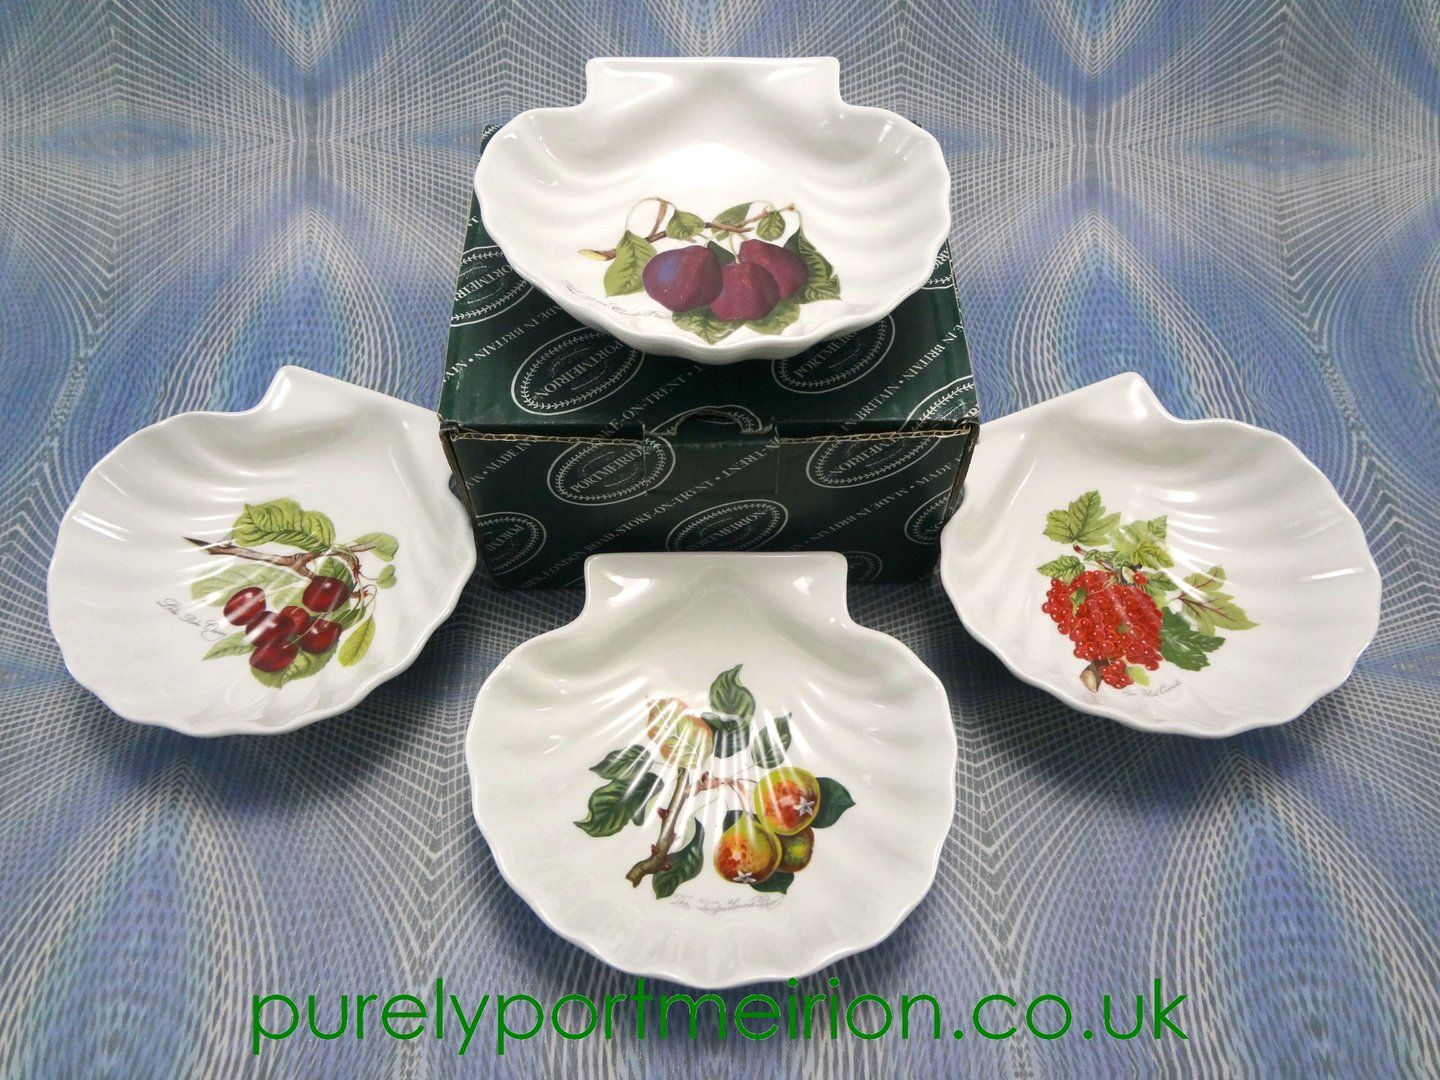 Portmeirion Pomona Vintage Set Of 4 Shell Shaped Dishes Boxed & Portmeirion Pomona Vintage Set Of 4 Shell Shaped Dishes Boxed ...